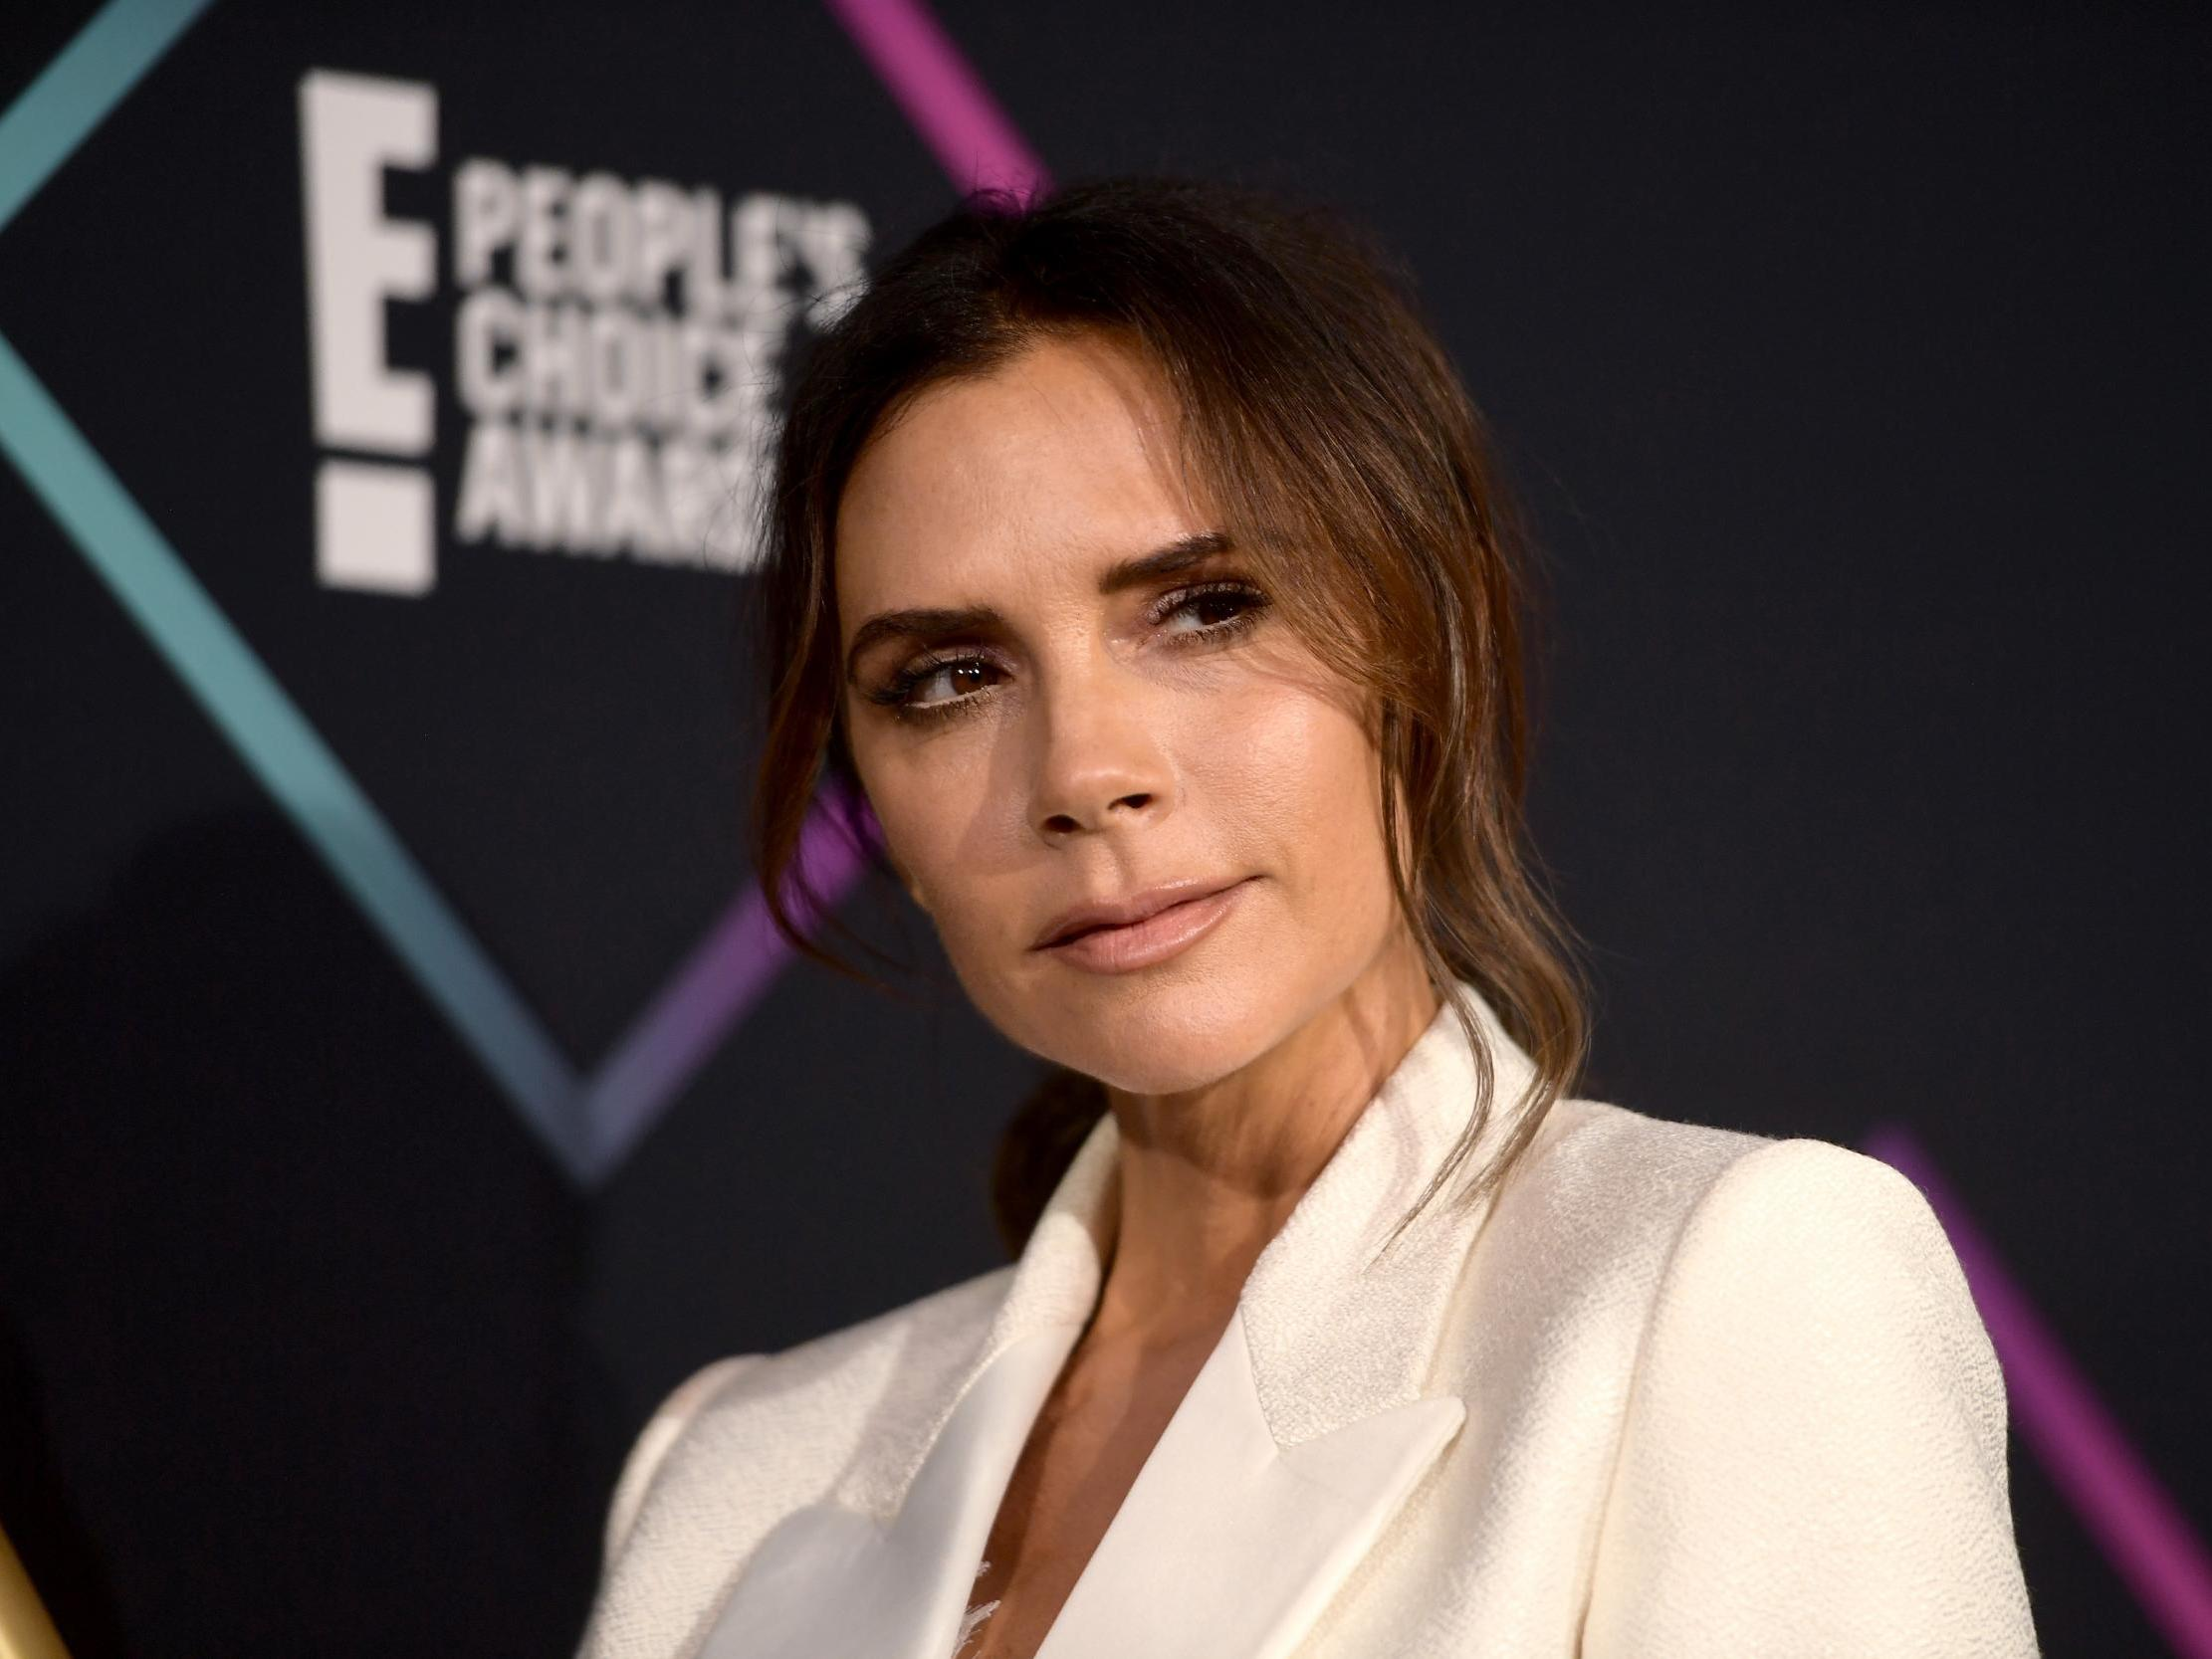 Victoria Beckham 'made £1m' from Spice Girls tour despite not being on it